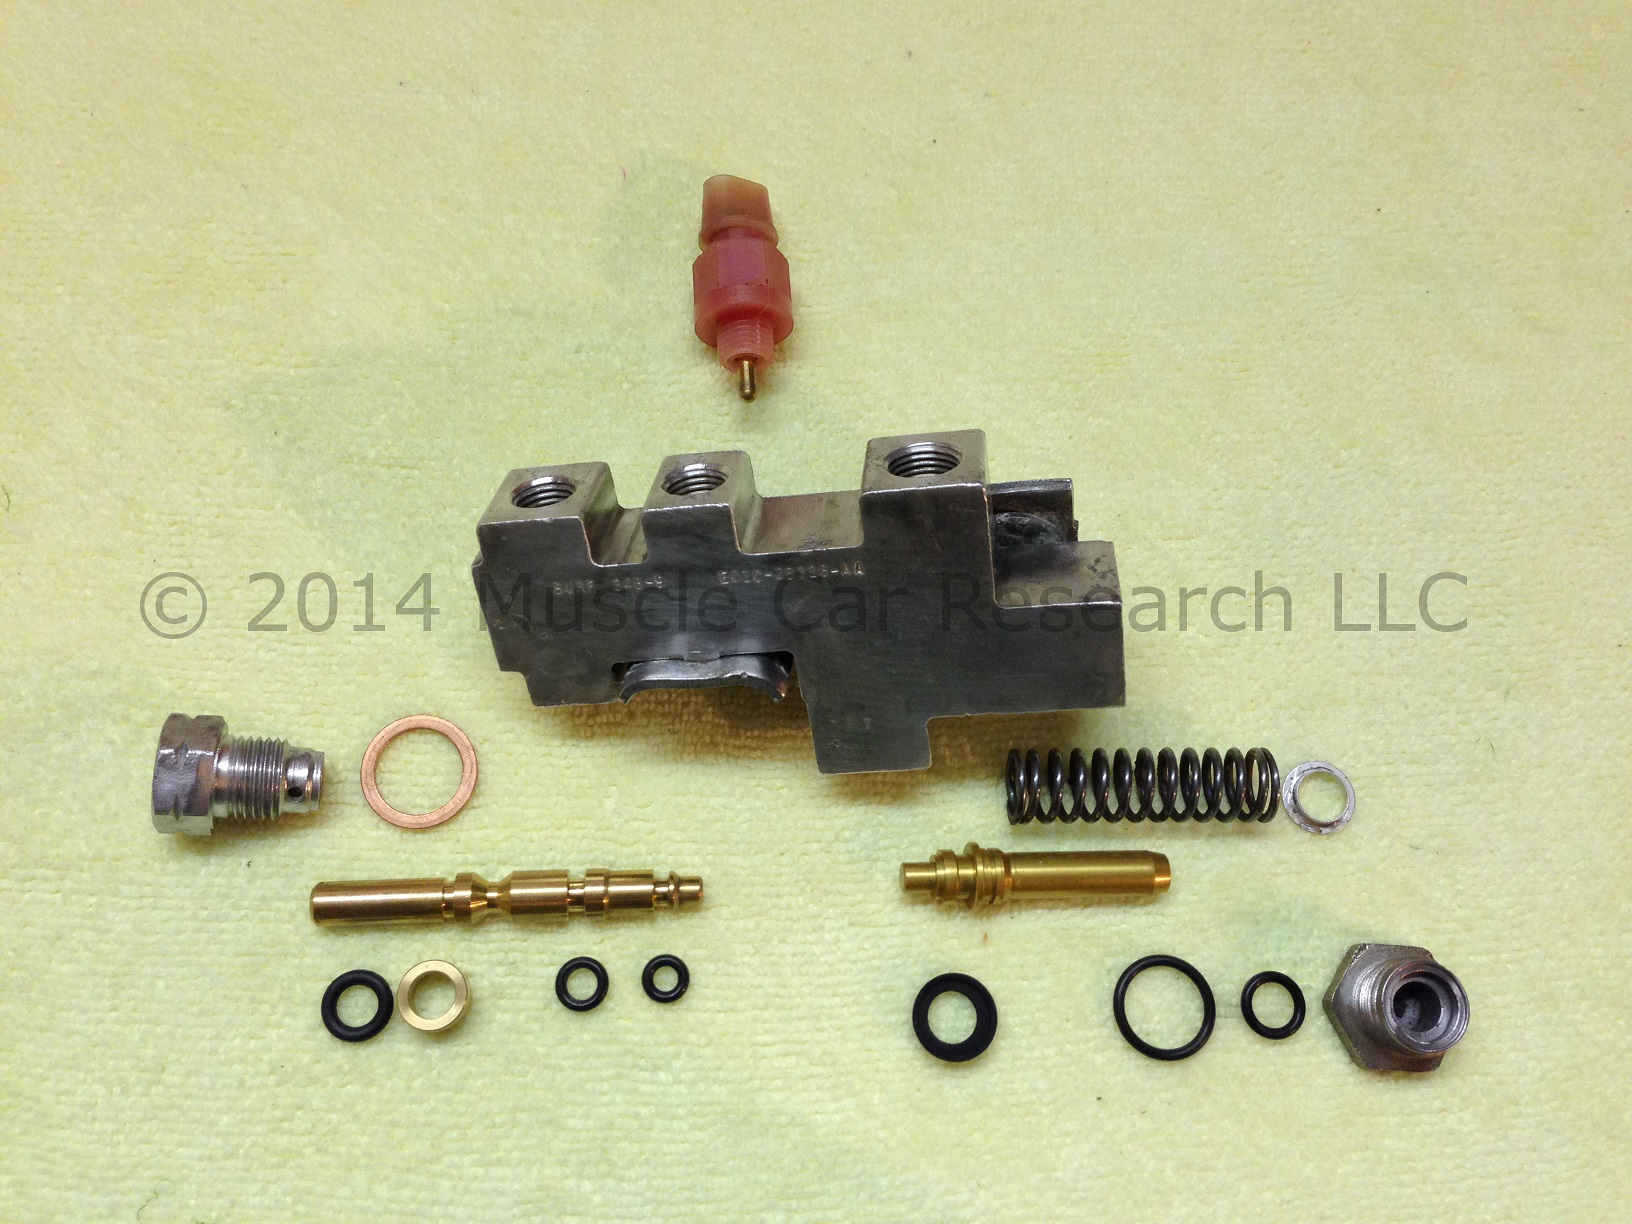 Showthread further E0ZC 2B328 AA Rebuild together with Mitsubishi Warning Light Guide besides 232233942508 in addition 1993 Ram Cummins 3500 Brake Proportioning Valve 271094. on 1986 f250 proportioning valve